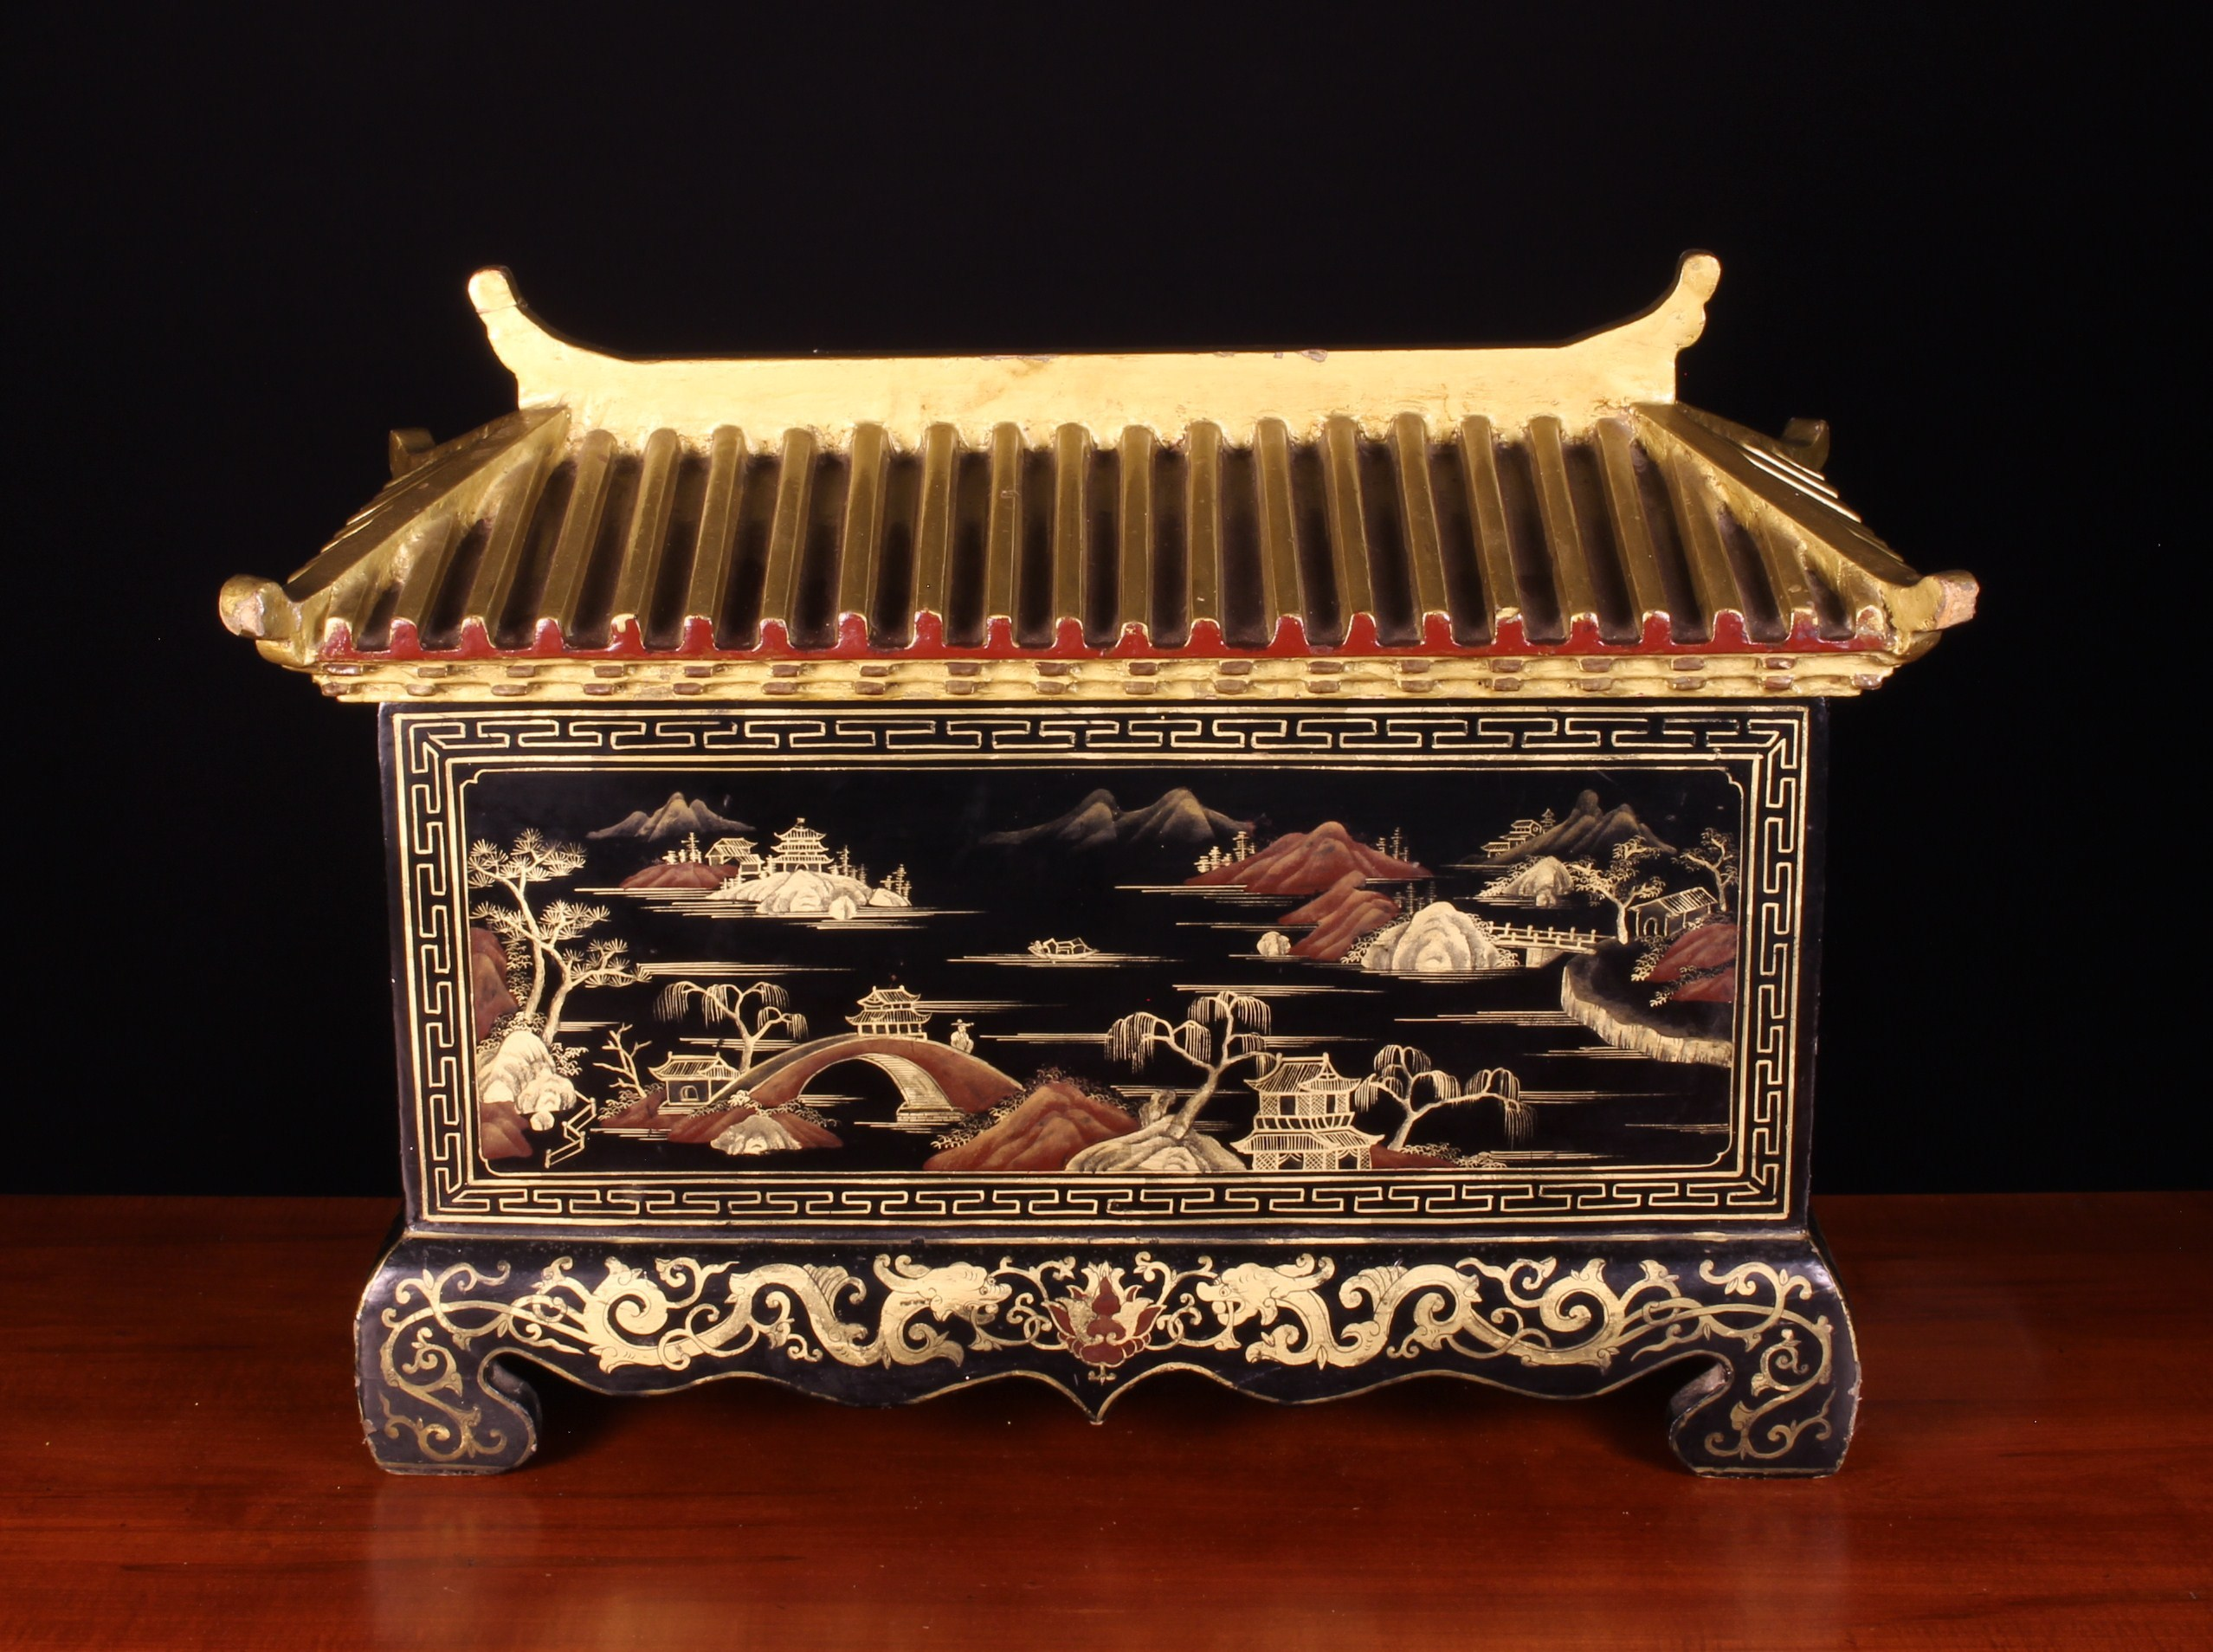 An Unusual 19th Century Lacquered Chinoiserie Coffret/Casket of rectangular form with a moulded